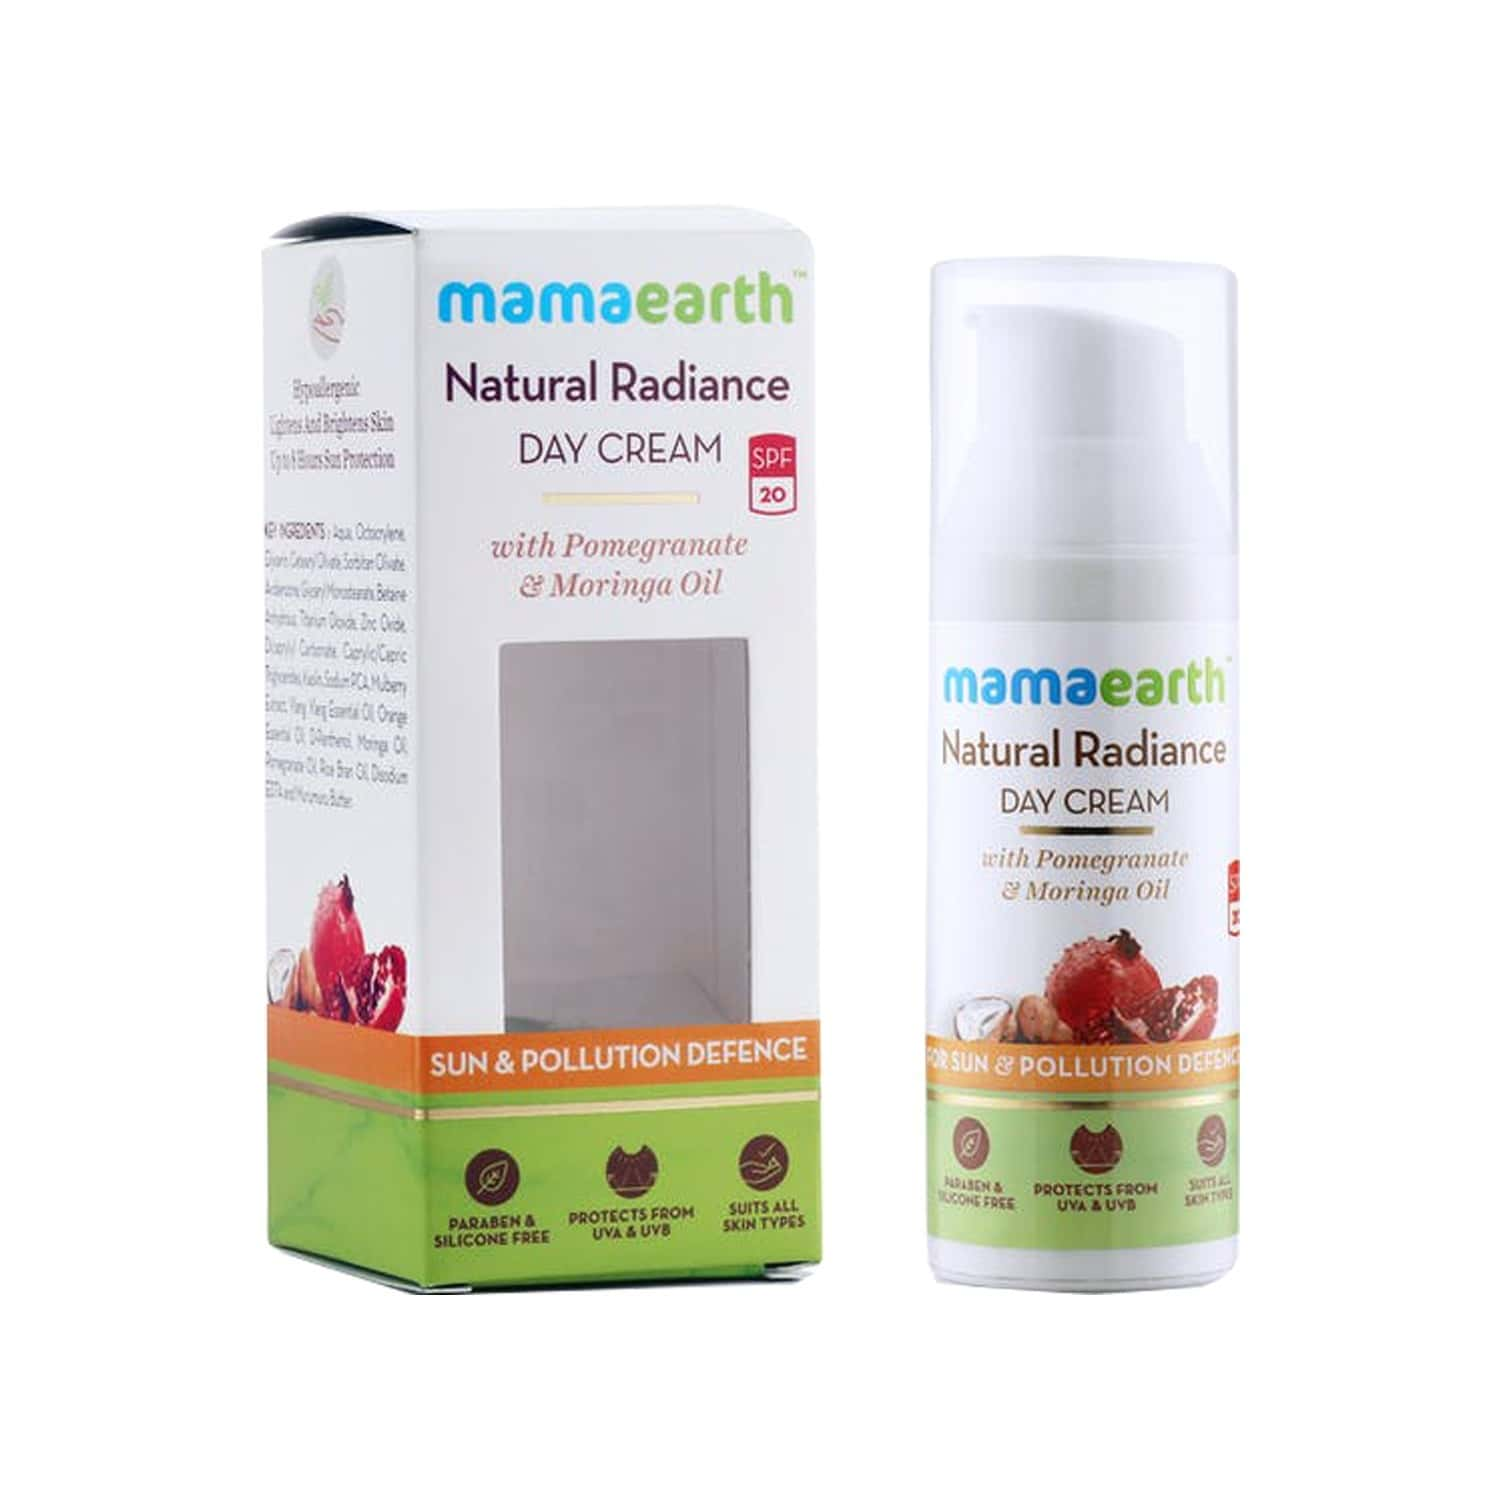 Mamaearth Natural  Radiance Day Cream - 50ml And Overnight Repair Face Cream - 50ml   Of